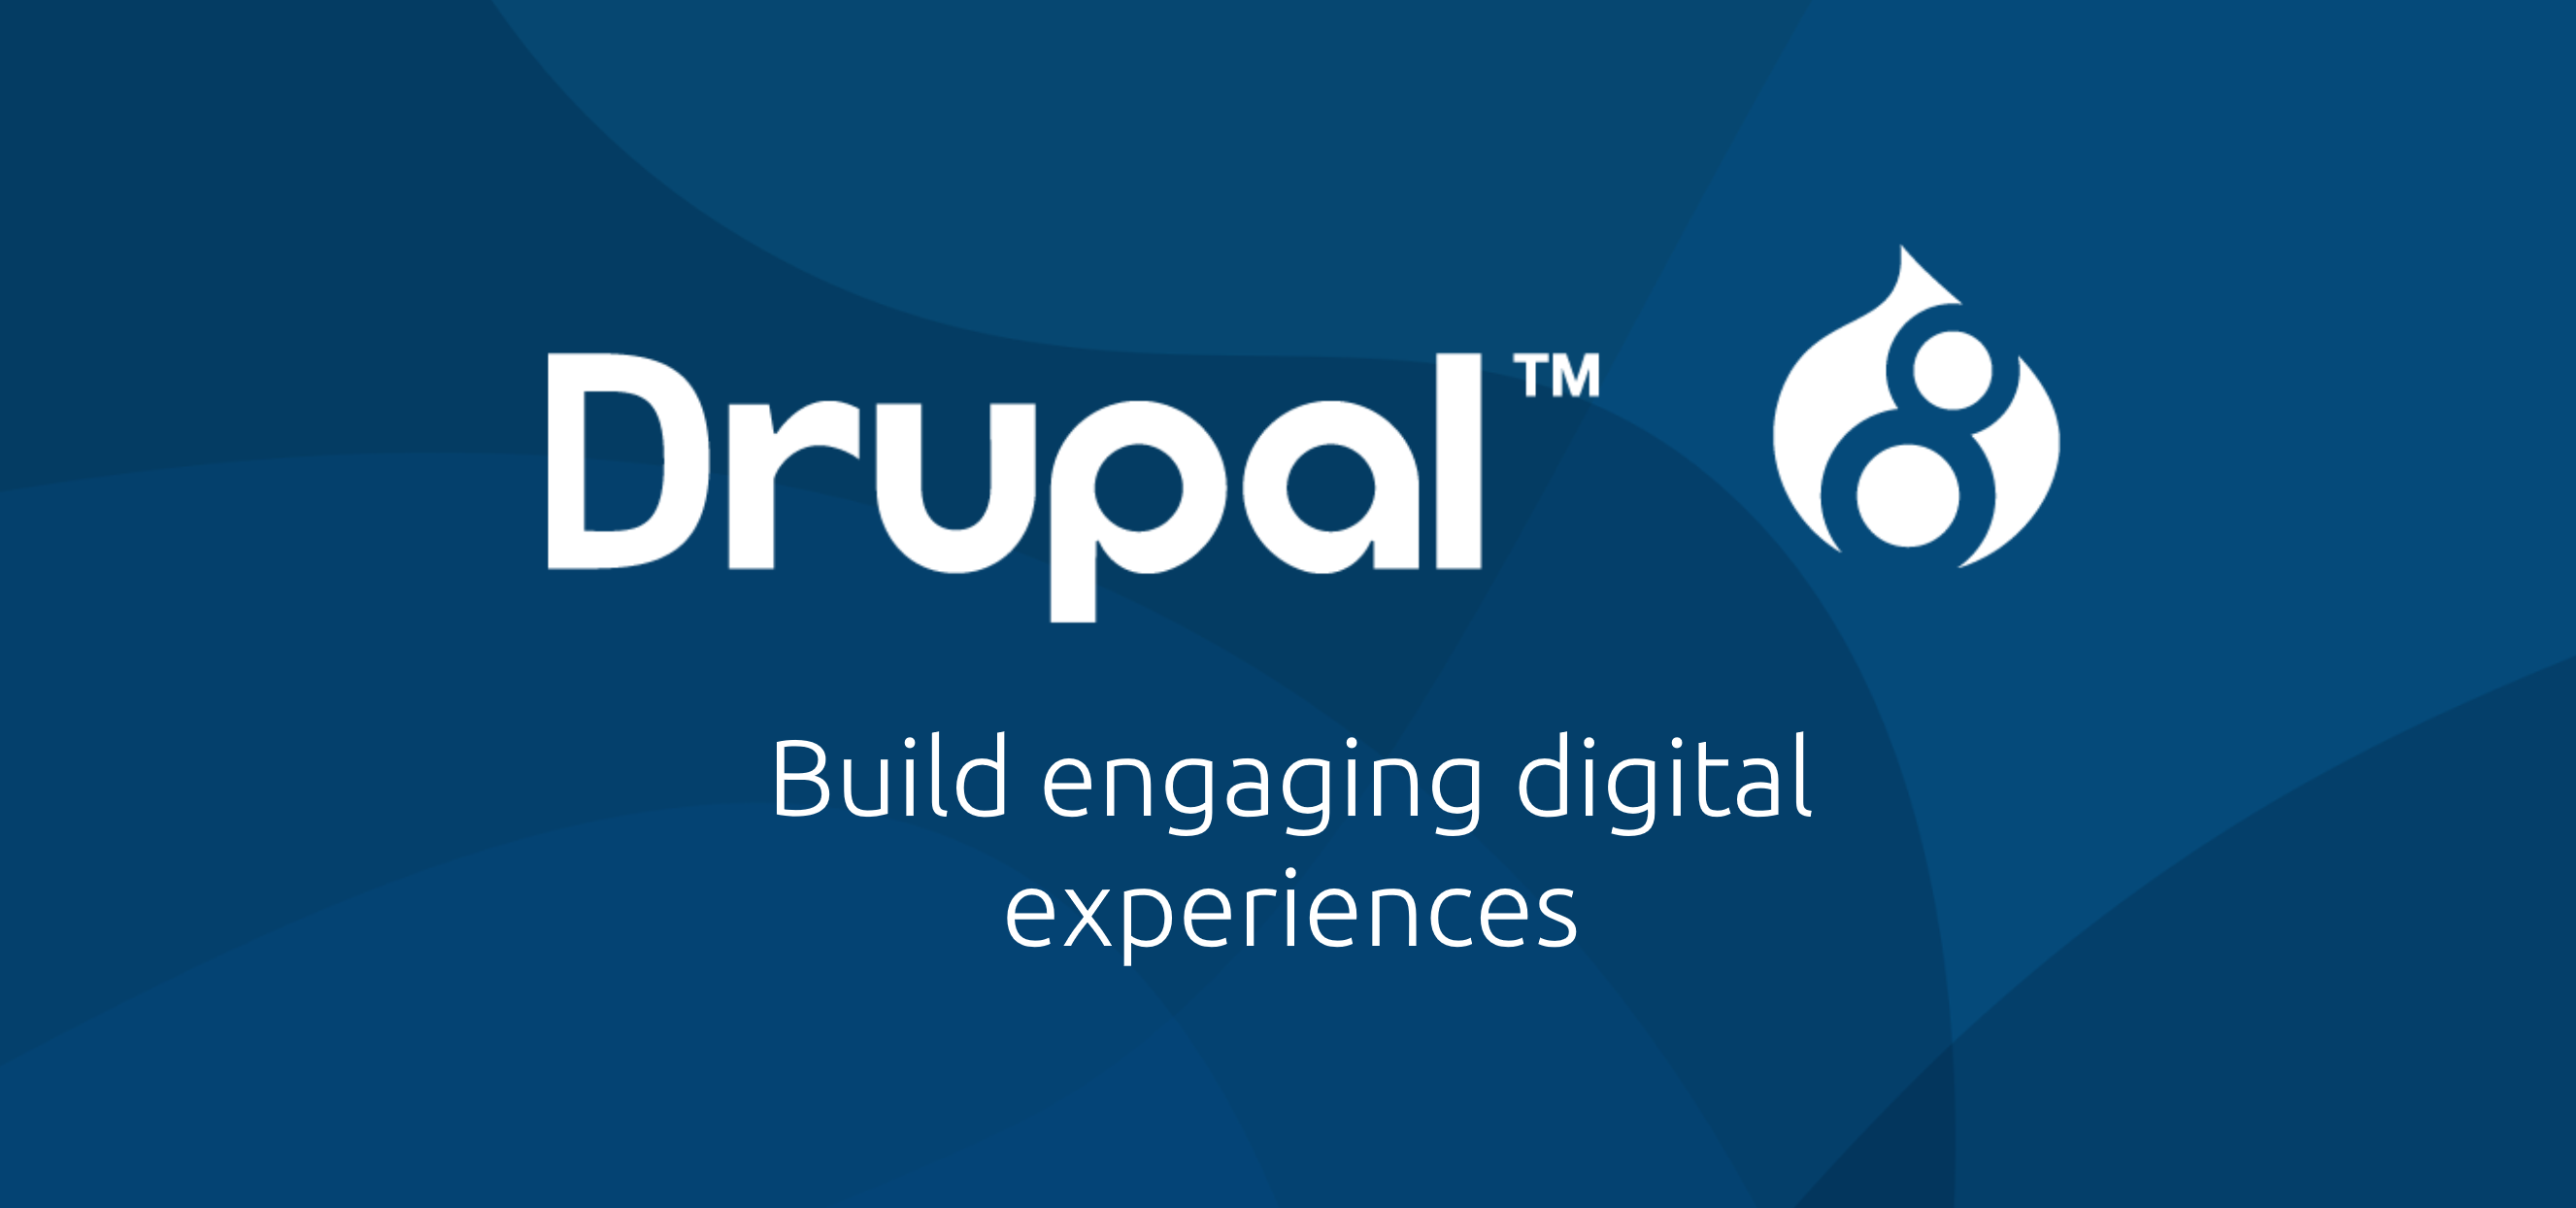 Drupal logo and tagline